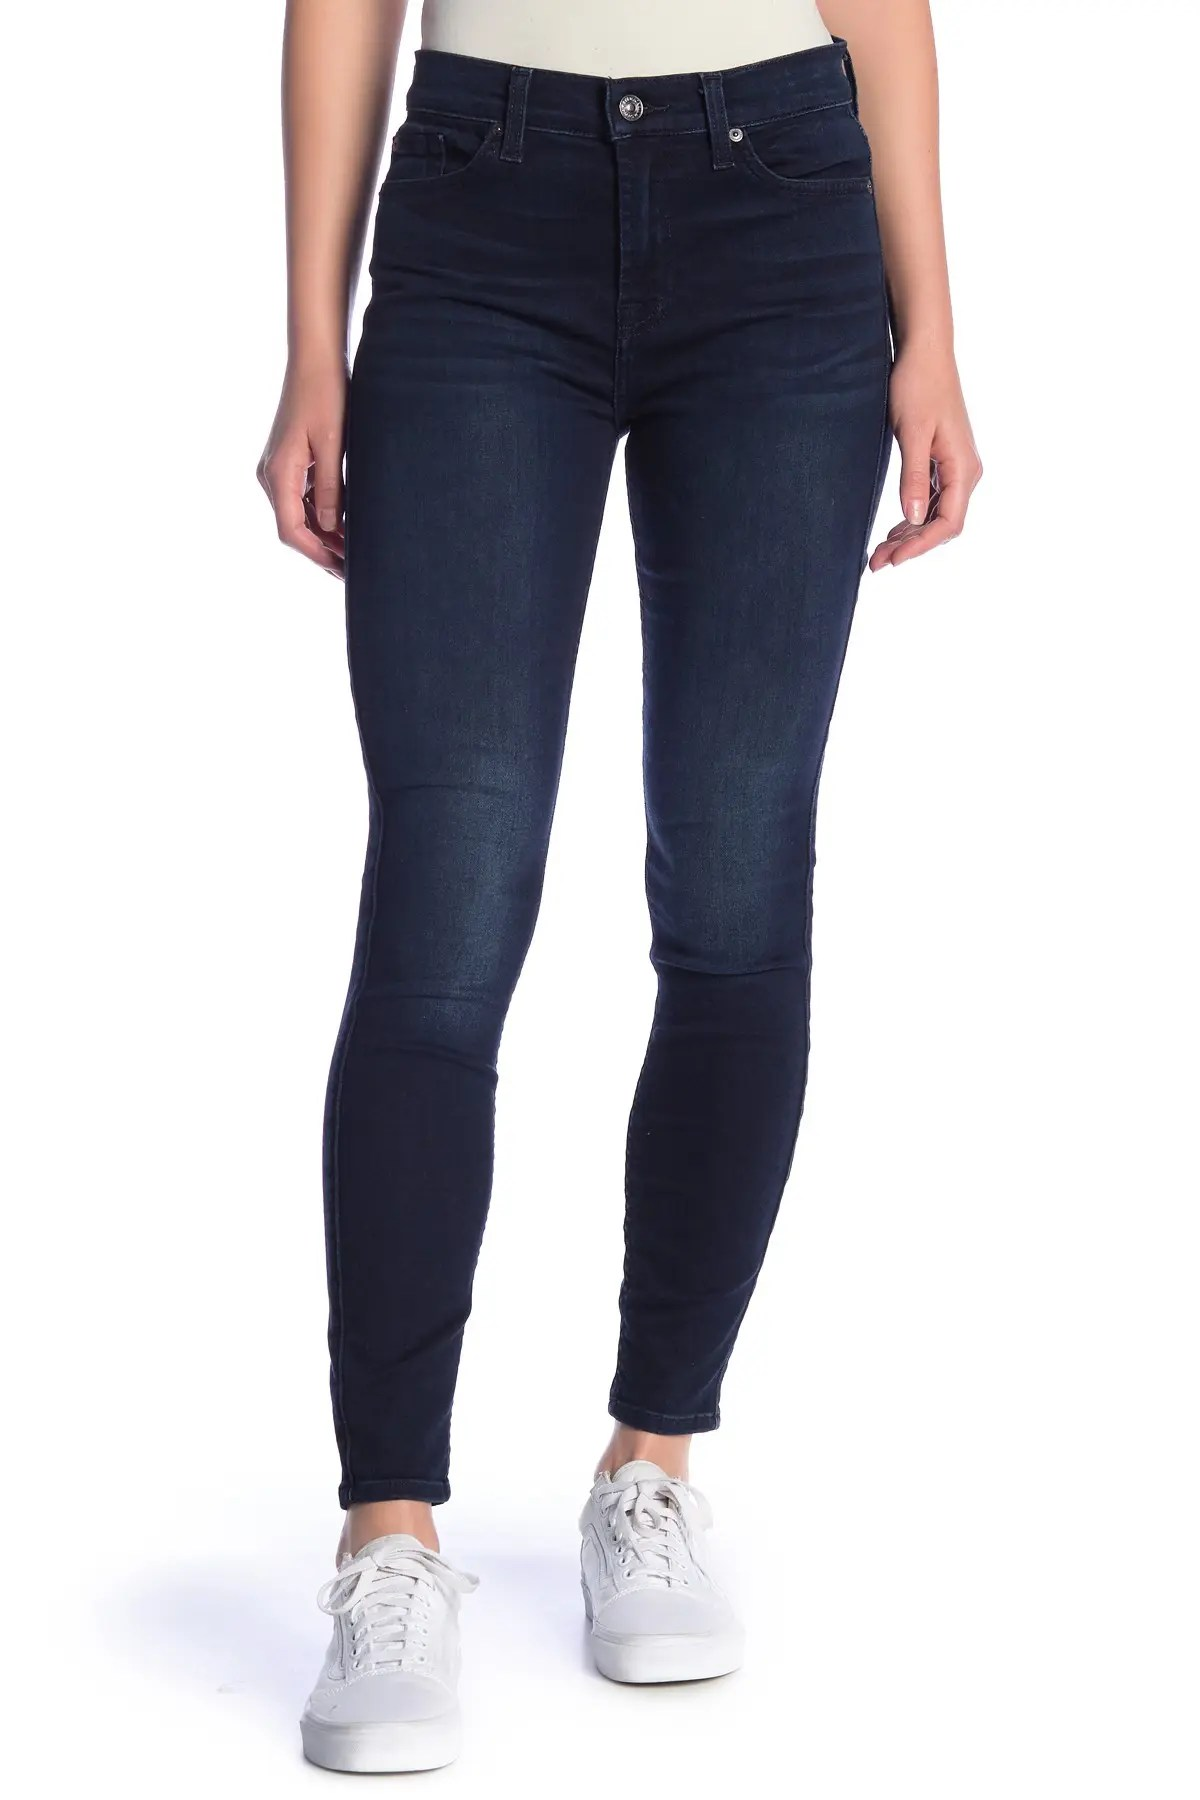 7 for all mankind gwenevere high waist ankle crop skinny jeans nordstrom rack